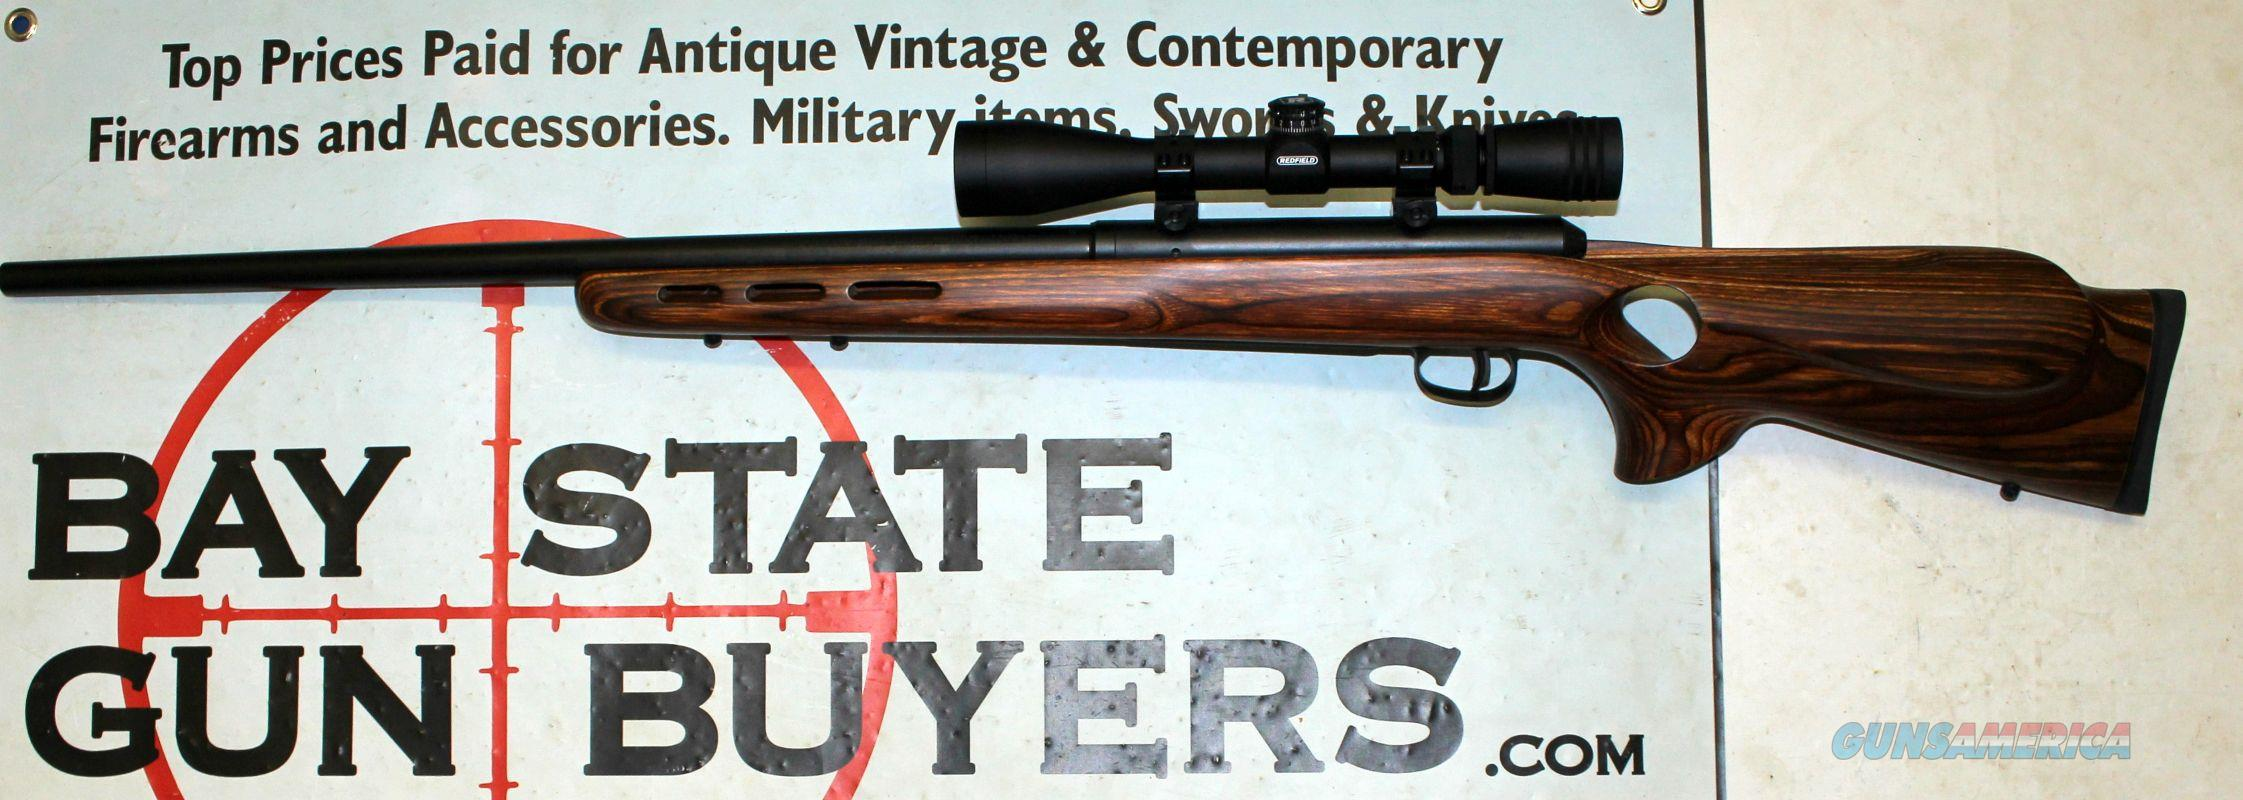 Savage Model 25 bolt action rifle .223 Rem LIGHTWEIGHT edition REDFIELD 3-9x40 SCOPE  Guns > Rifles > Savage Rifles > 25